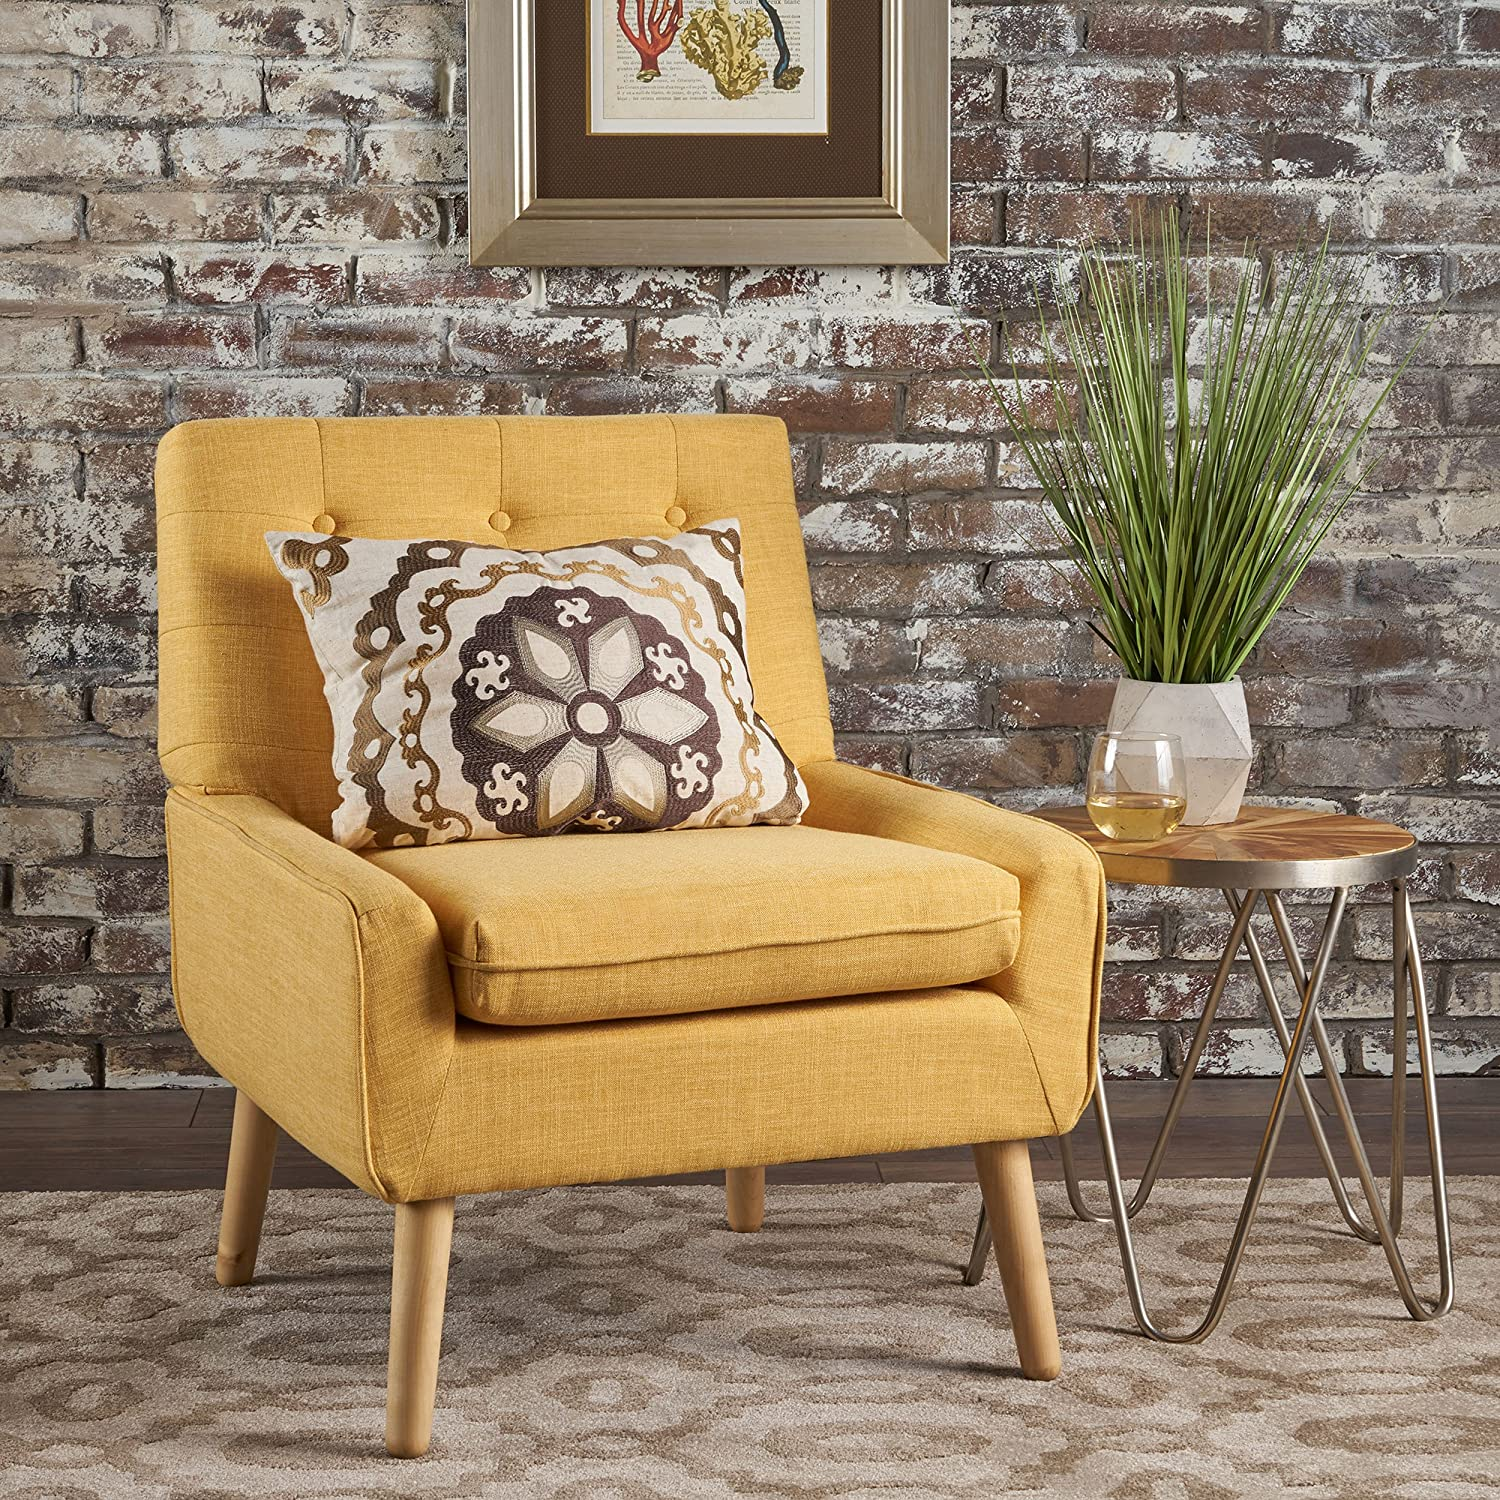 Christopher Knight Home 302041 Eileen Buttoned Mid Century Modern Muted Yellow Fabric Chair, Natural